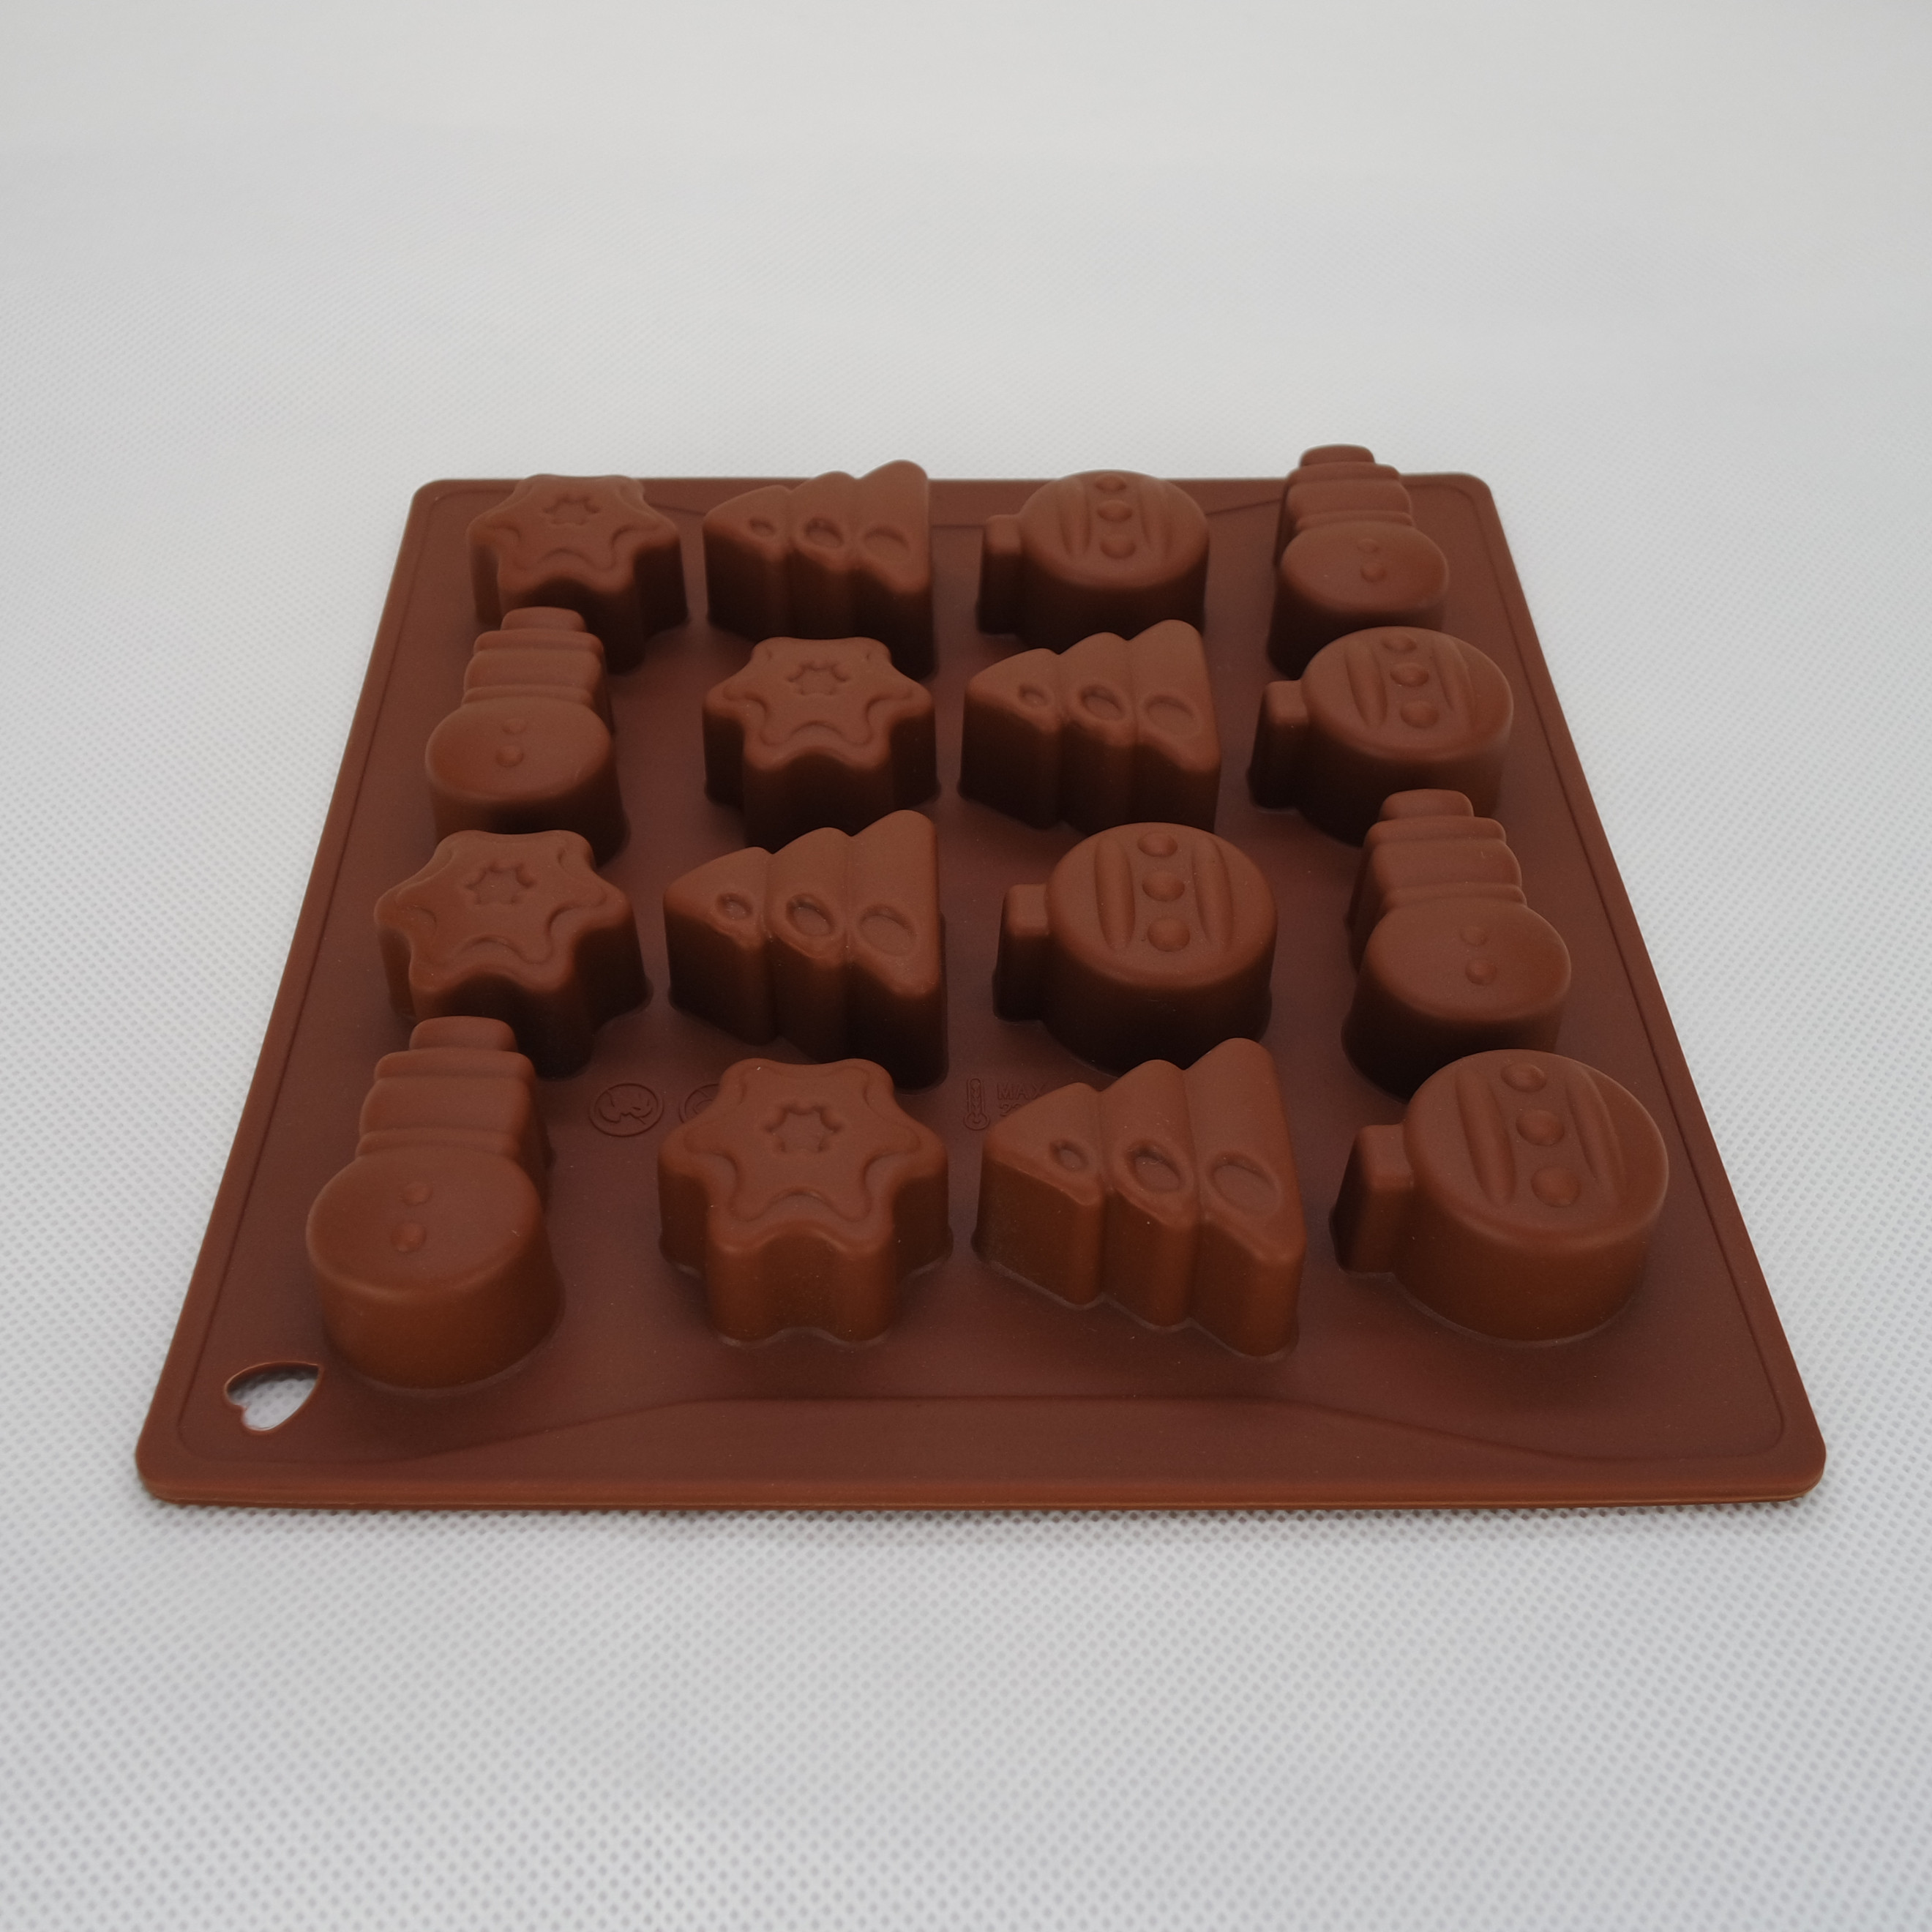 CXCH-016	Silicone Bakeware Chocolate Mould 16-Cup